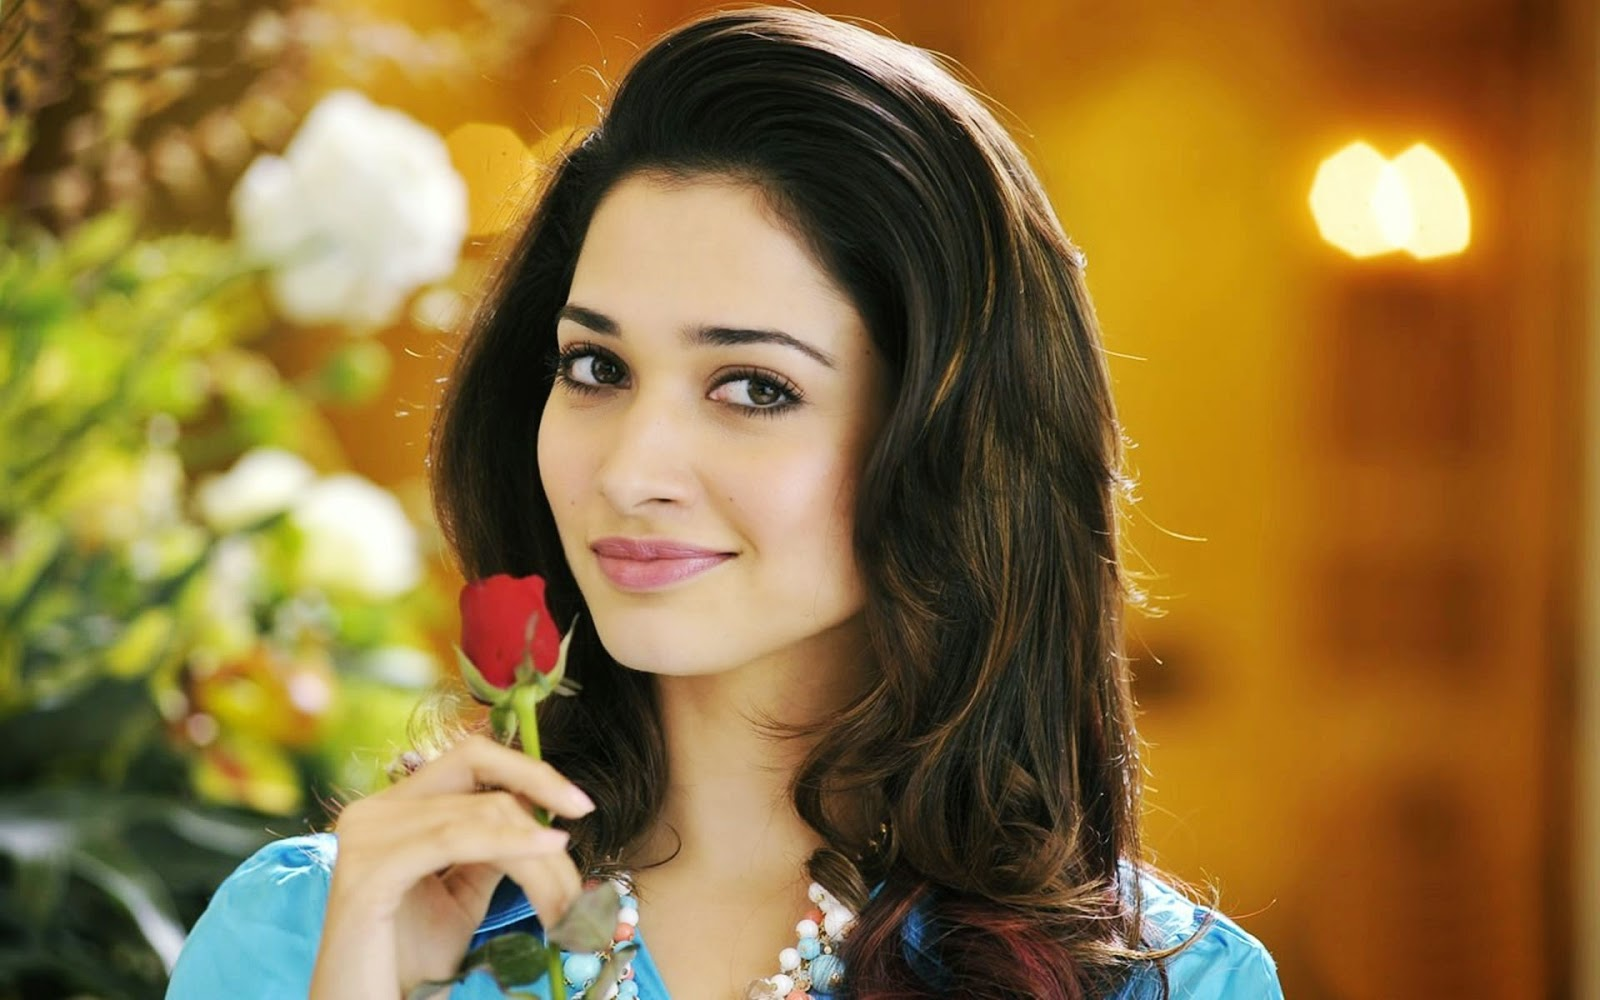 south indian actress tamanna [hd] photo collection - hd and selected